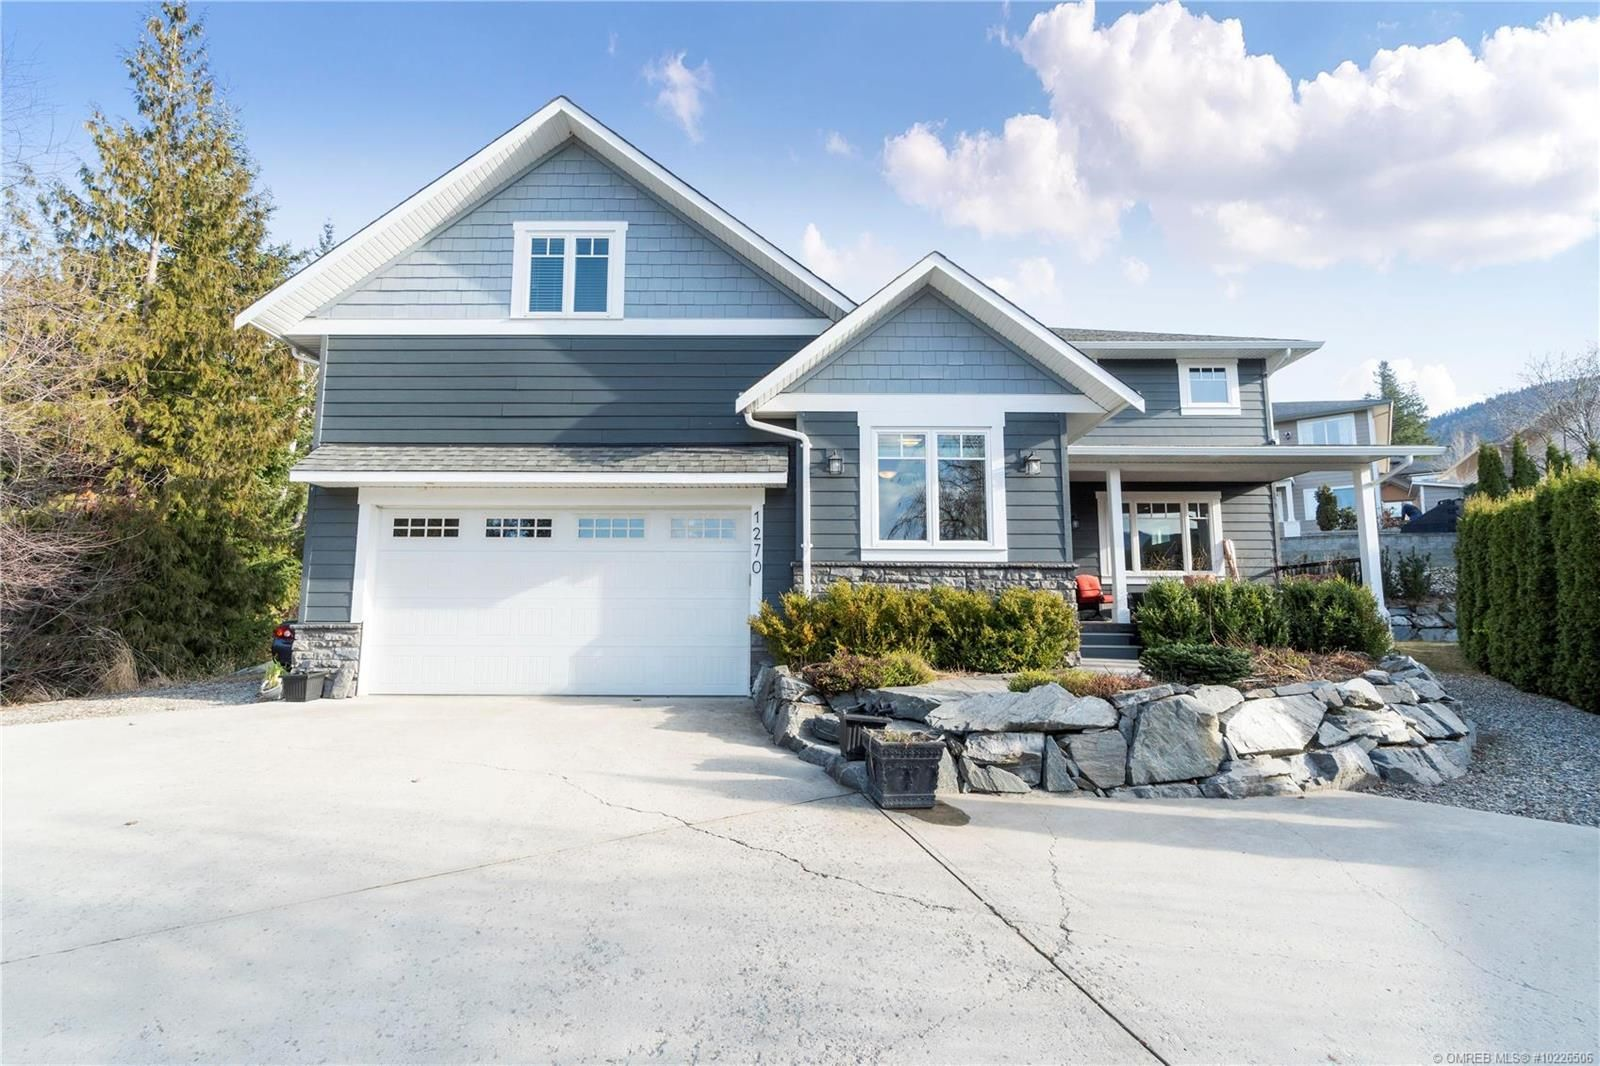 Main Photo: 1270 7 Avenue, SE in Salmon Arm: House for sale : MLS®# 10226506